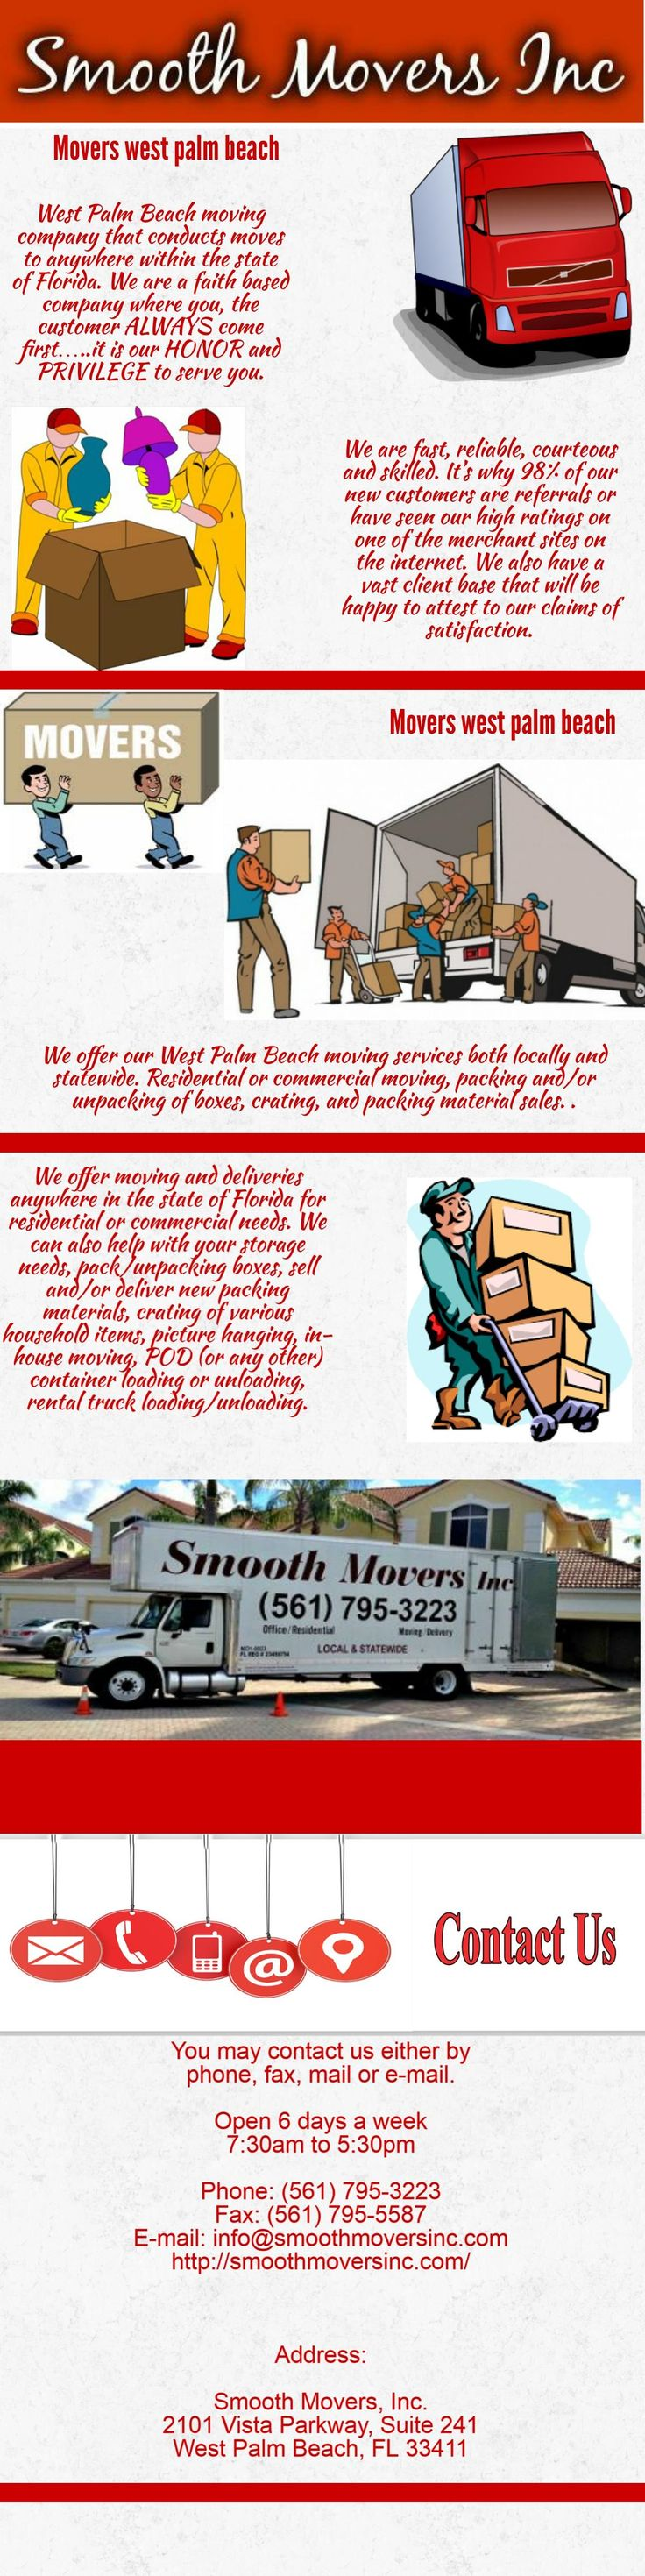 Looking for best west palm beach movers? Contact us, We offer in-house moving, container or rental truck loading/unloading, storage, etc. We offer quality staff, quality service and quality moving equipment on each and every job.For more info visit us